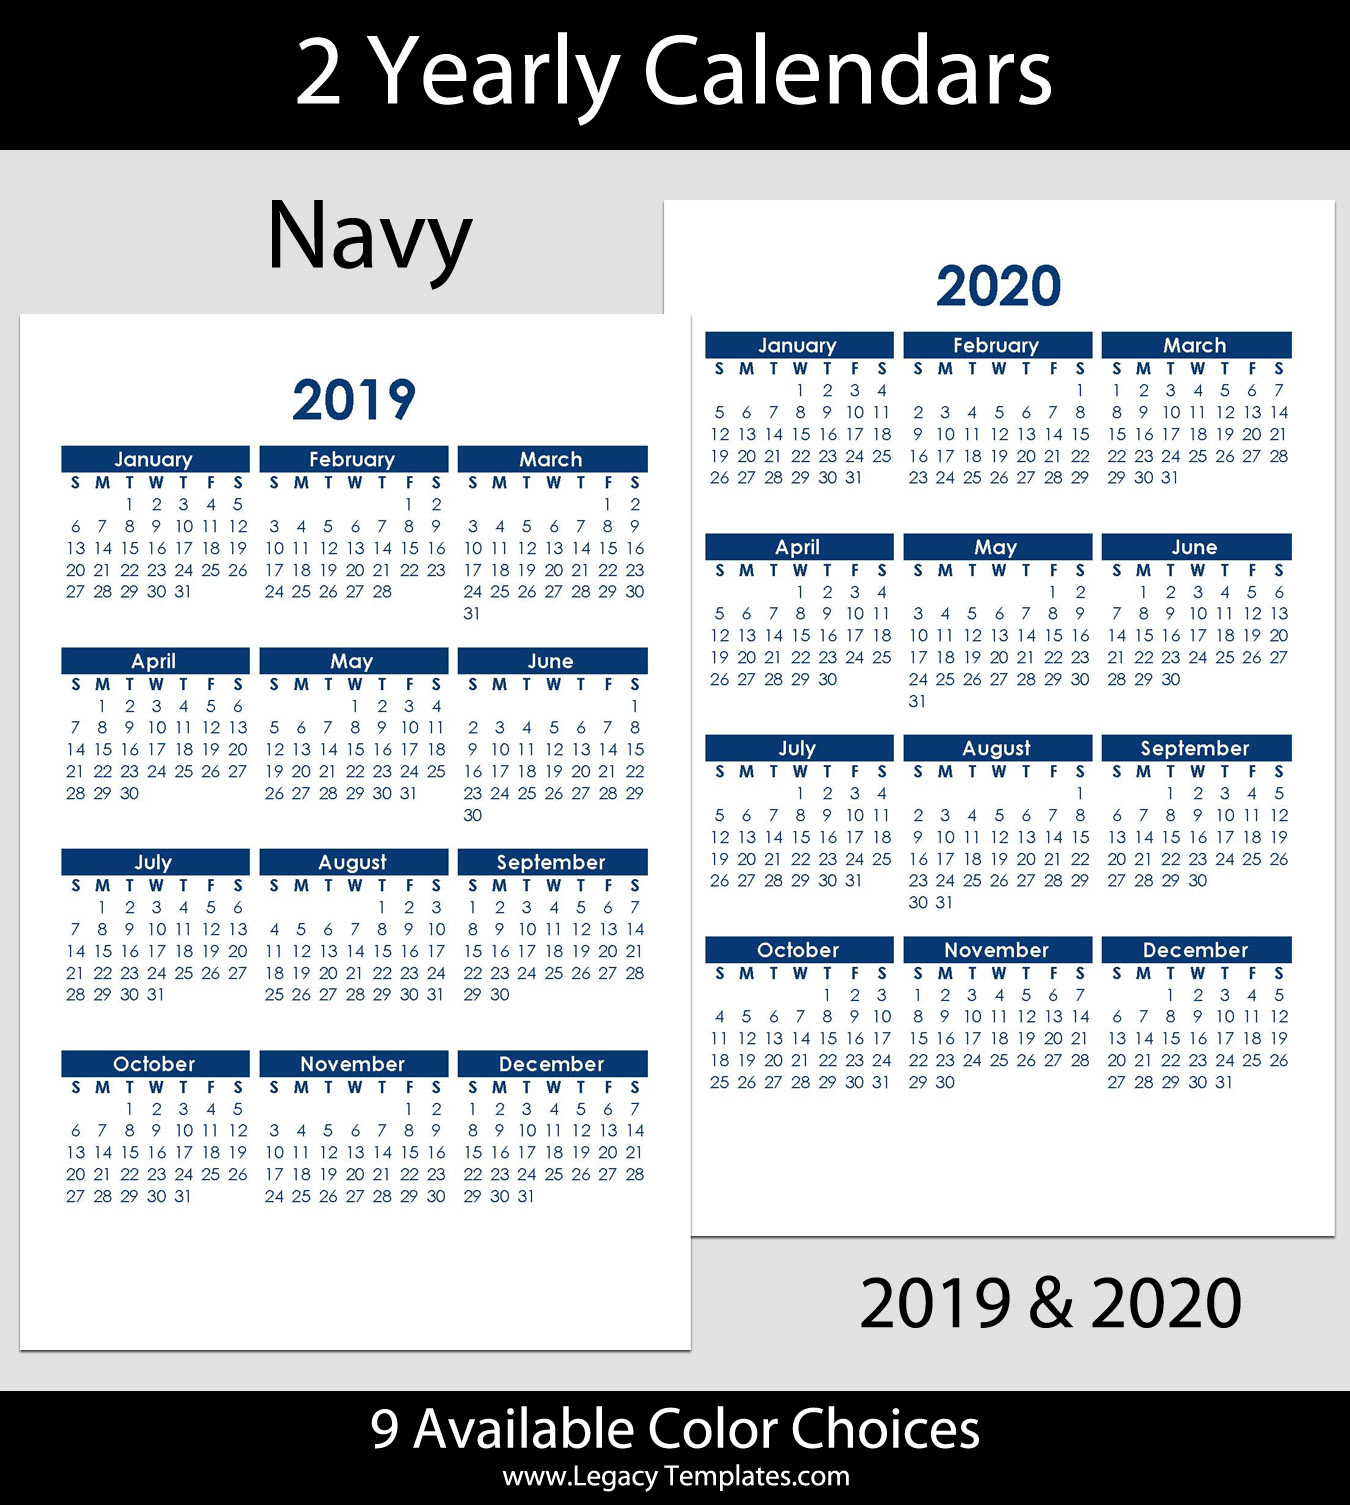 2019 & 2020 Yearly Calendar – 5.5 X 8.5 | Legacy Templates within 2020 Calendar For 5.5 X 8.5